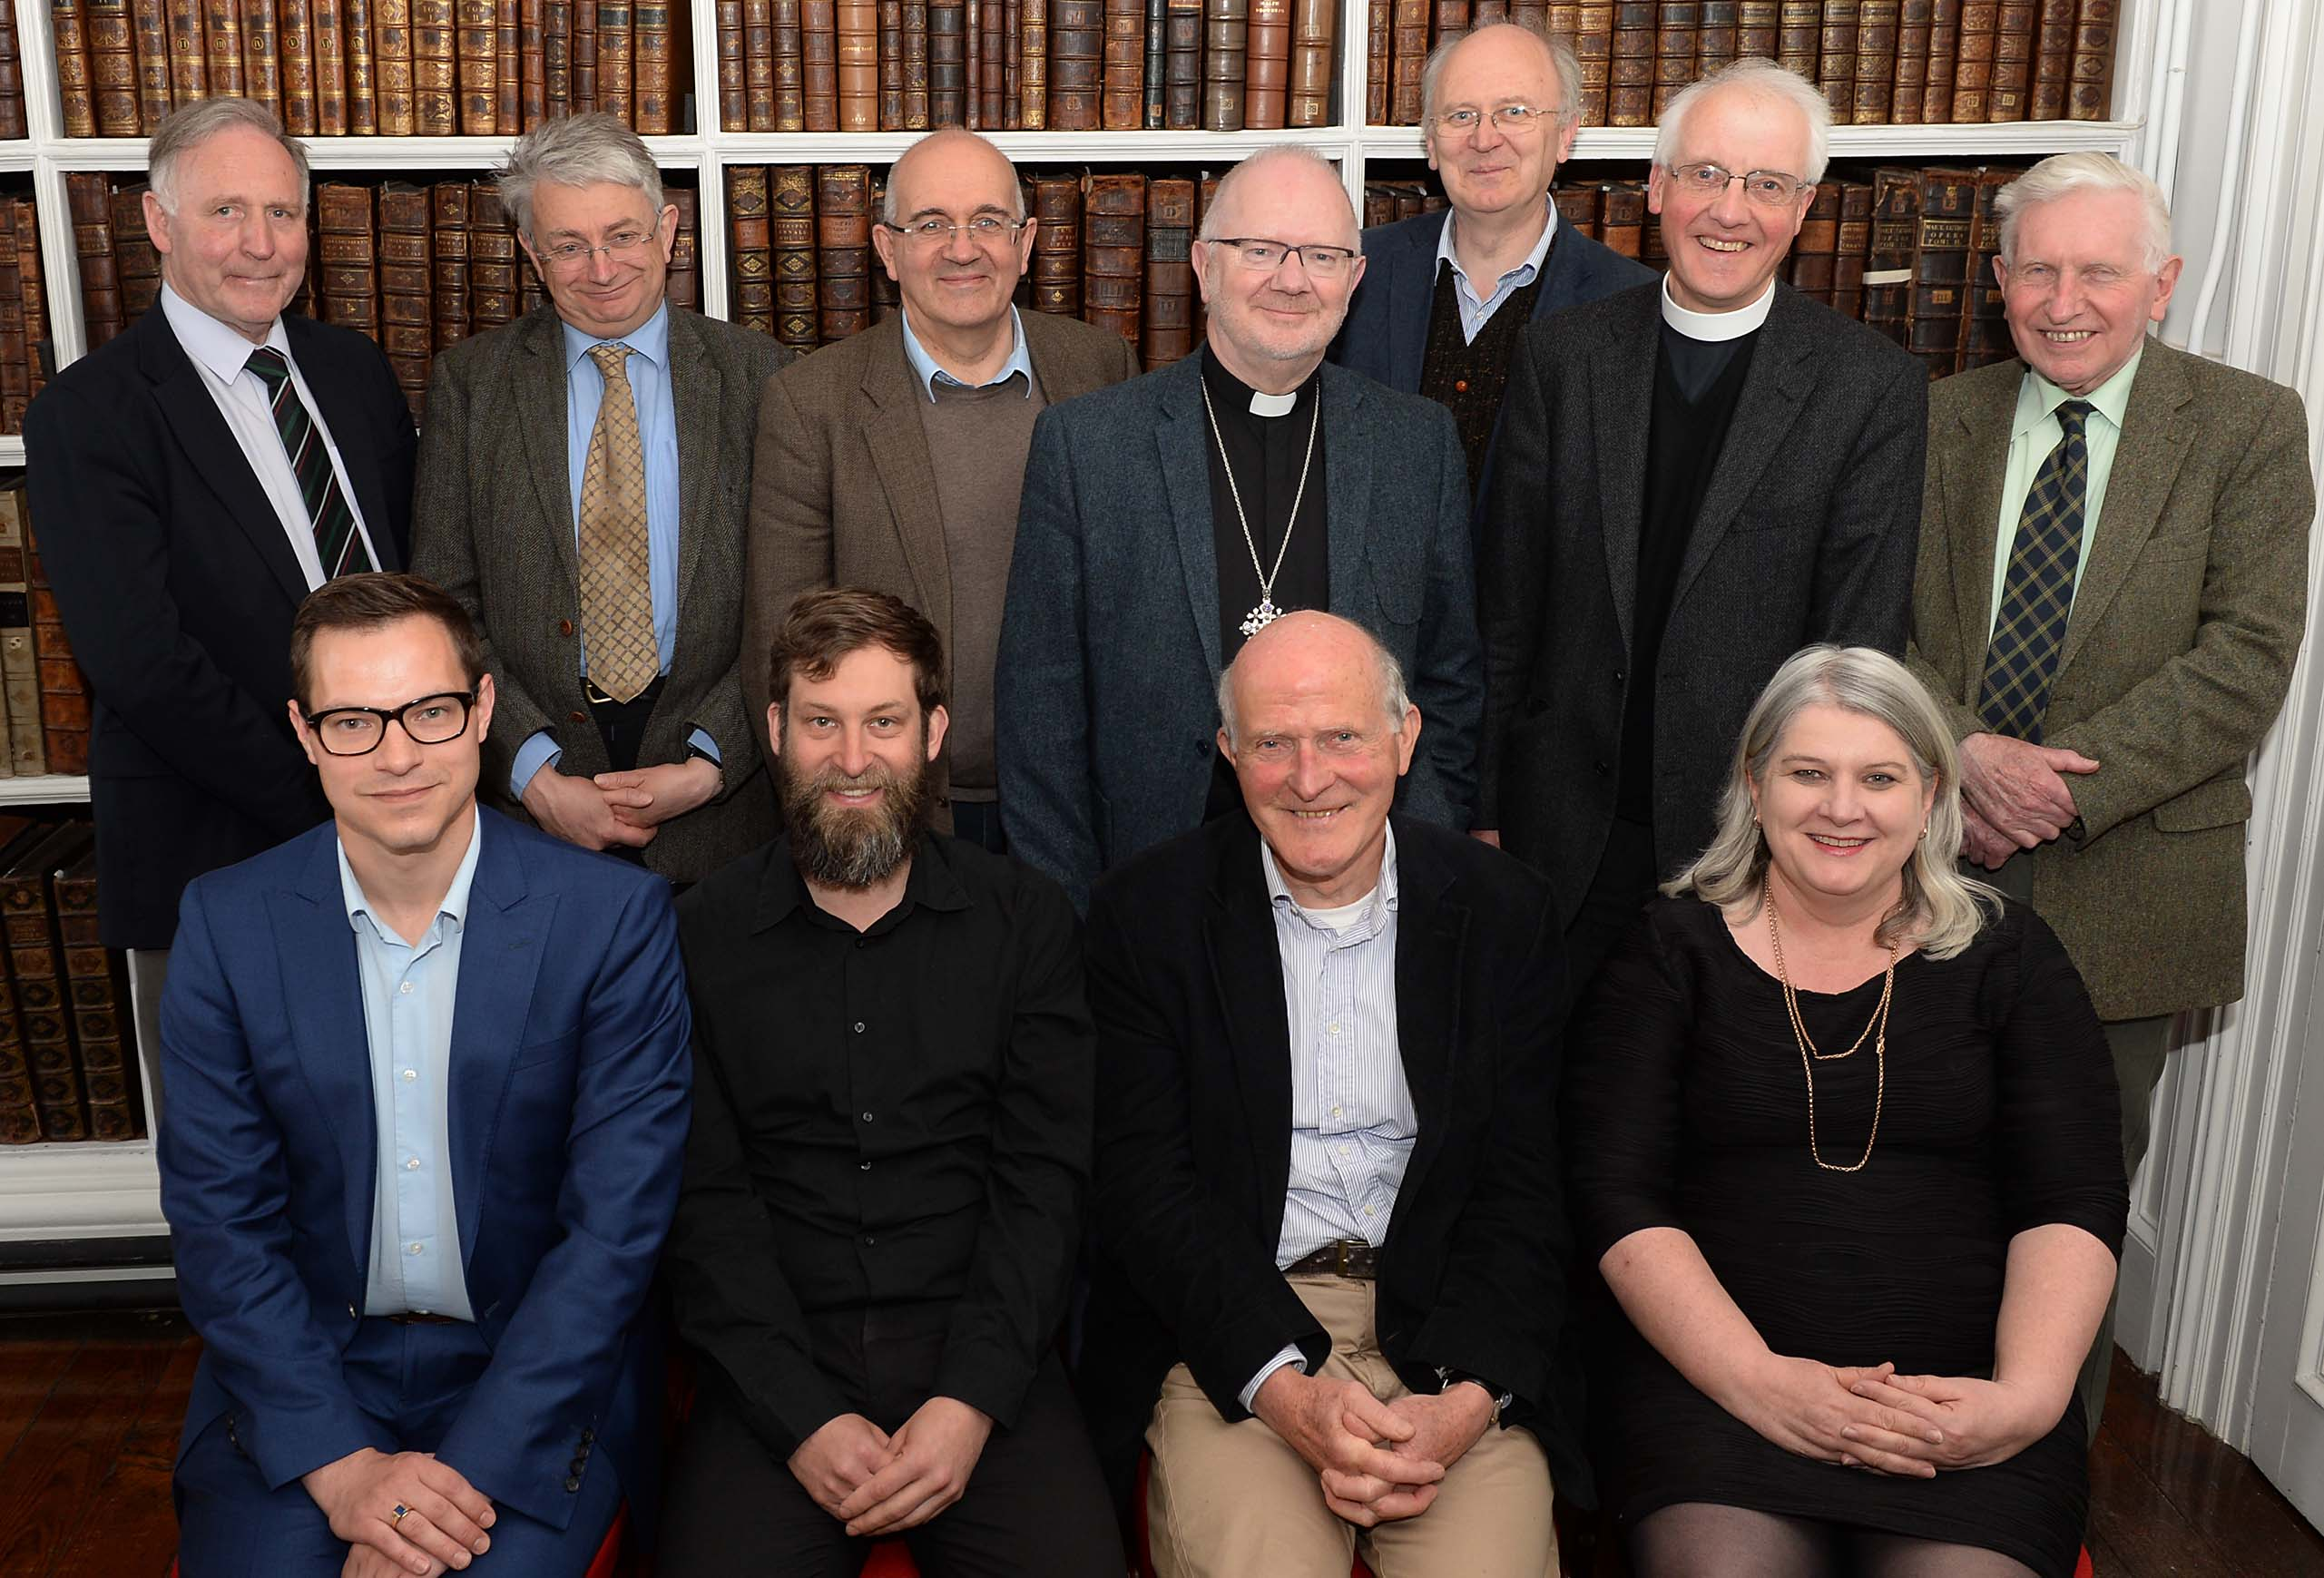 [Back row: from left to right] Dr Adrian Empey, Mr George Woodman, Professor David Hayton, Archbishop Richard Clarke, Mr Brendan Toomey, the Very Revd Gregory Dunstan, Dr Ken Milne [Front row: from left to right] Mr Jeffrey Cox, Dr Immo Warntjes, Professor Padraig O Riain and Dr Ida Milne Photo courtesy of Ian Maginess